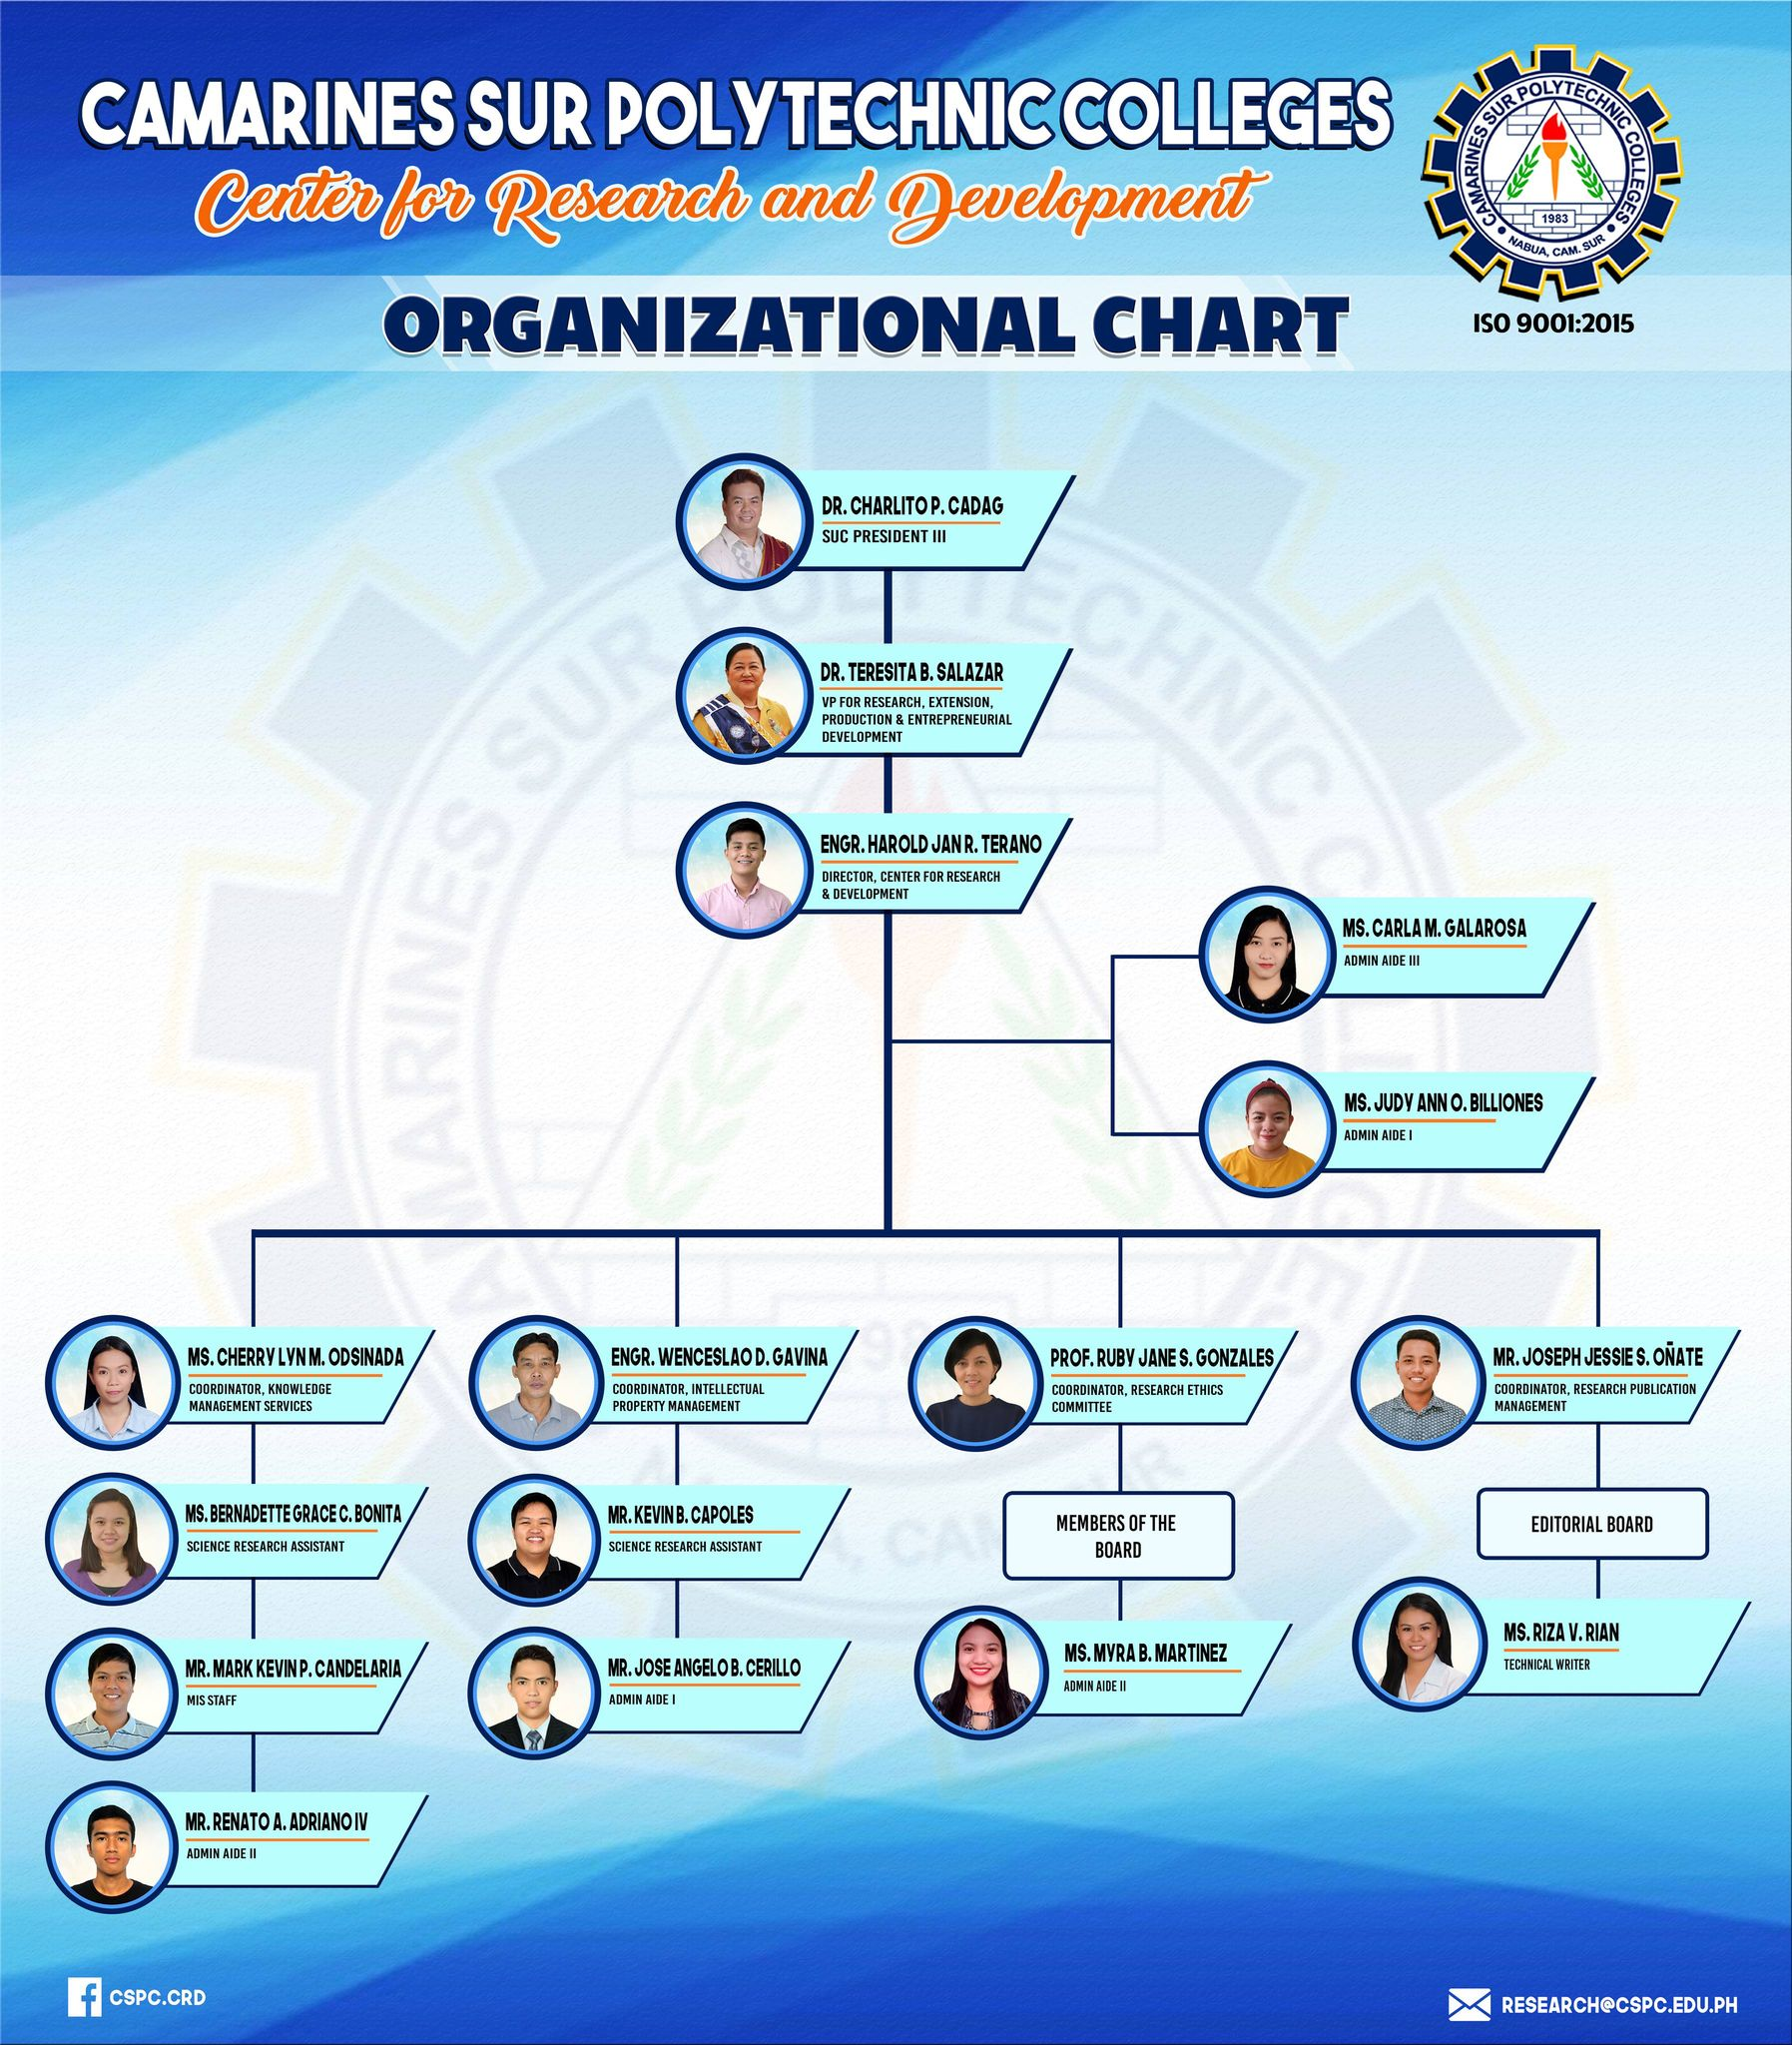 Center for Research and Development Organizational Structure